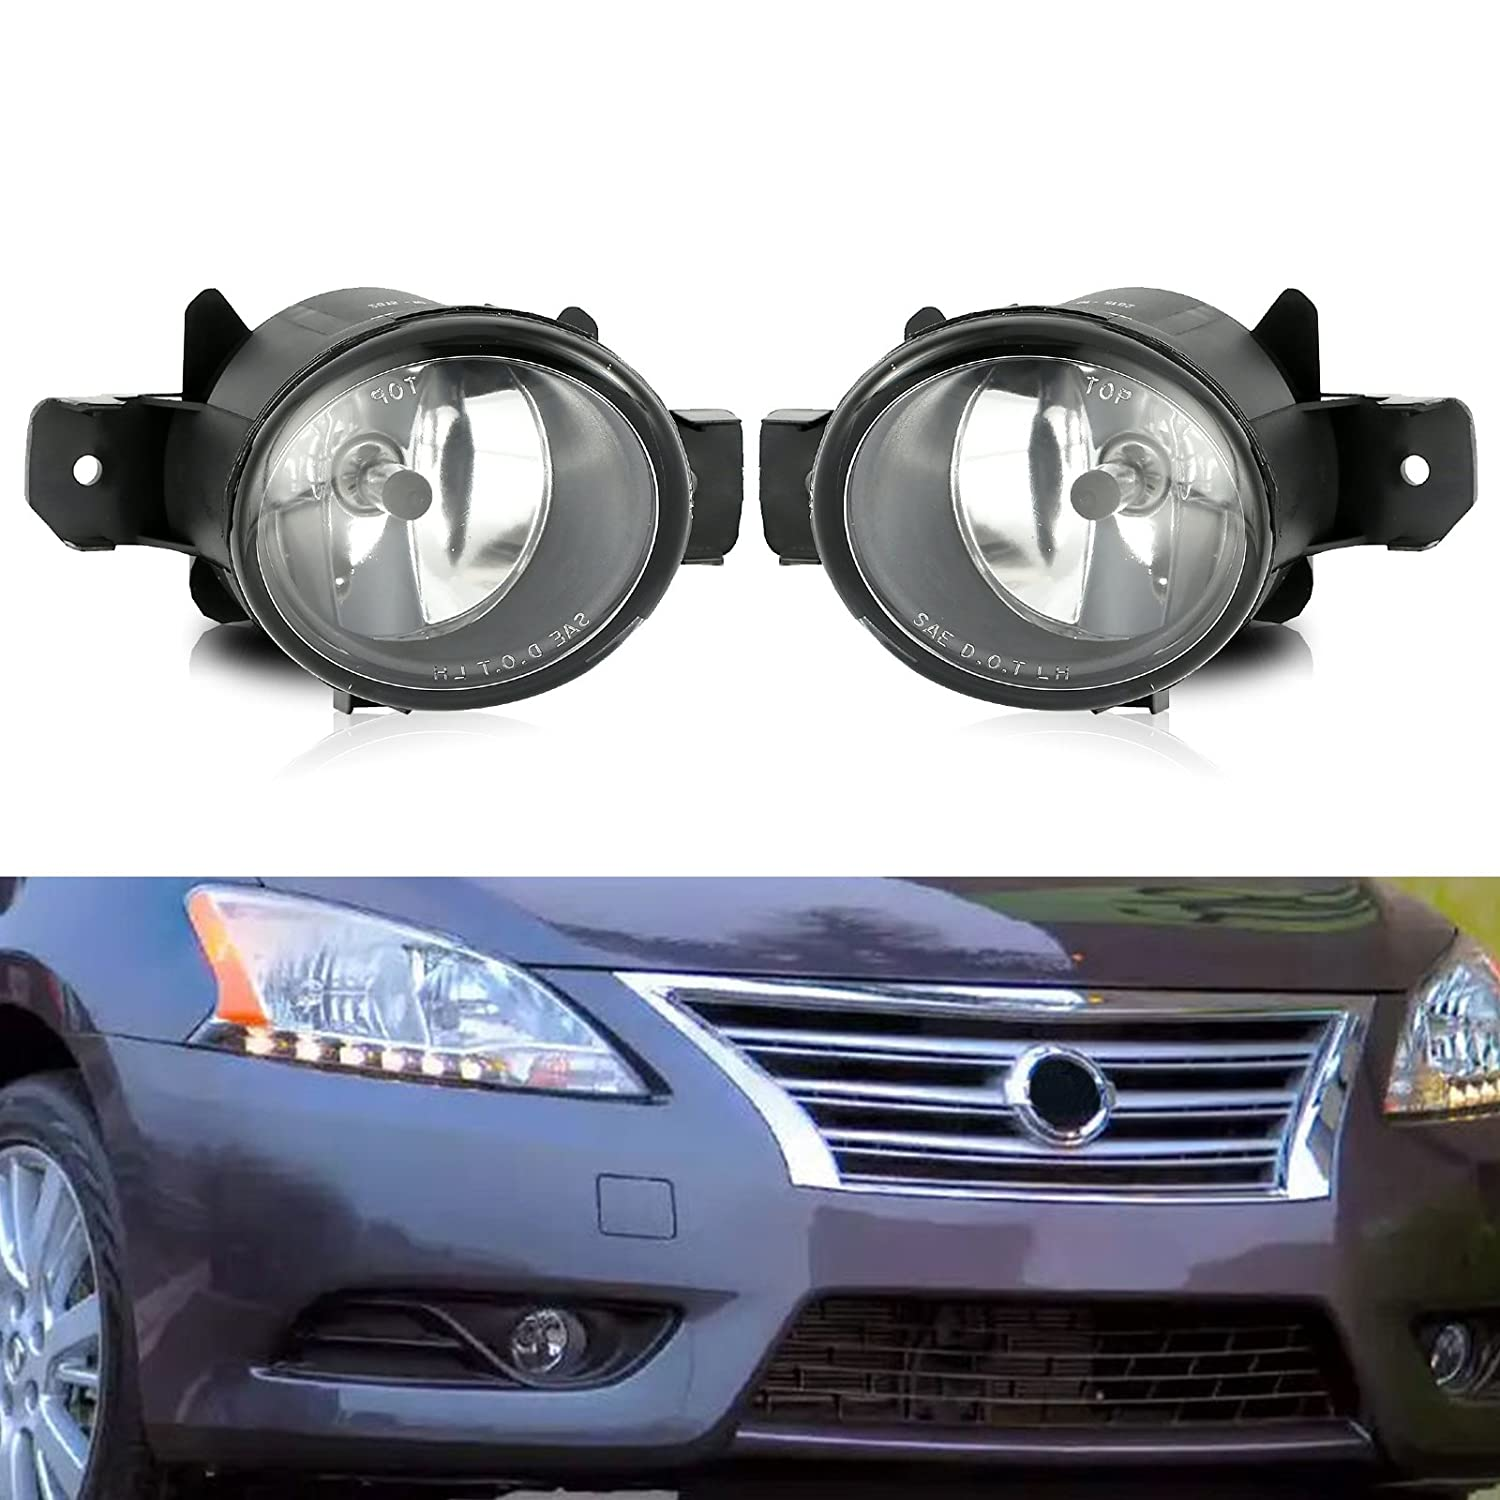 cciyu Clear Lens Replacement Fog Lights Front Bumper Lamps Replacement fit for 2007-2008 Nissan Maxima 120131-5210-1647531